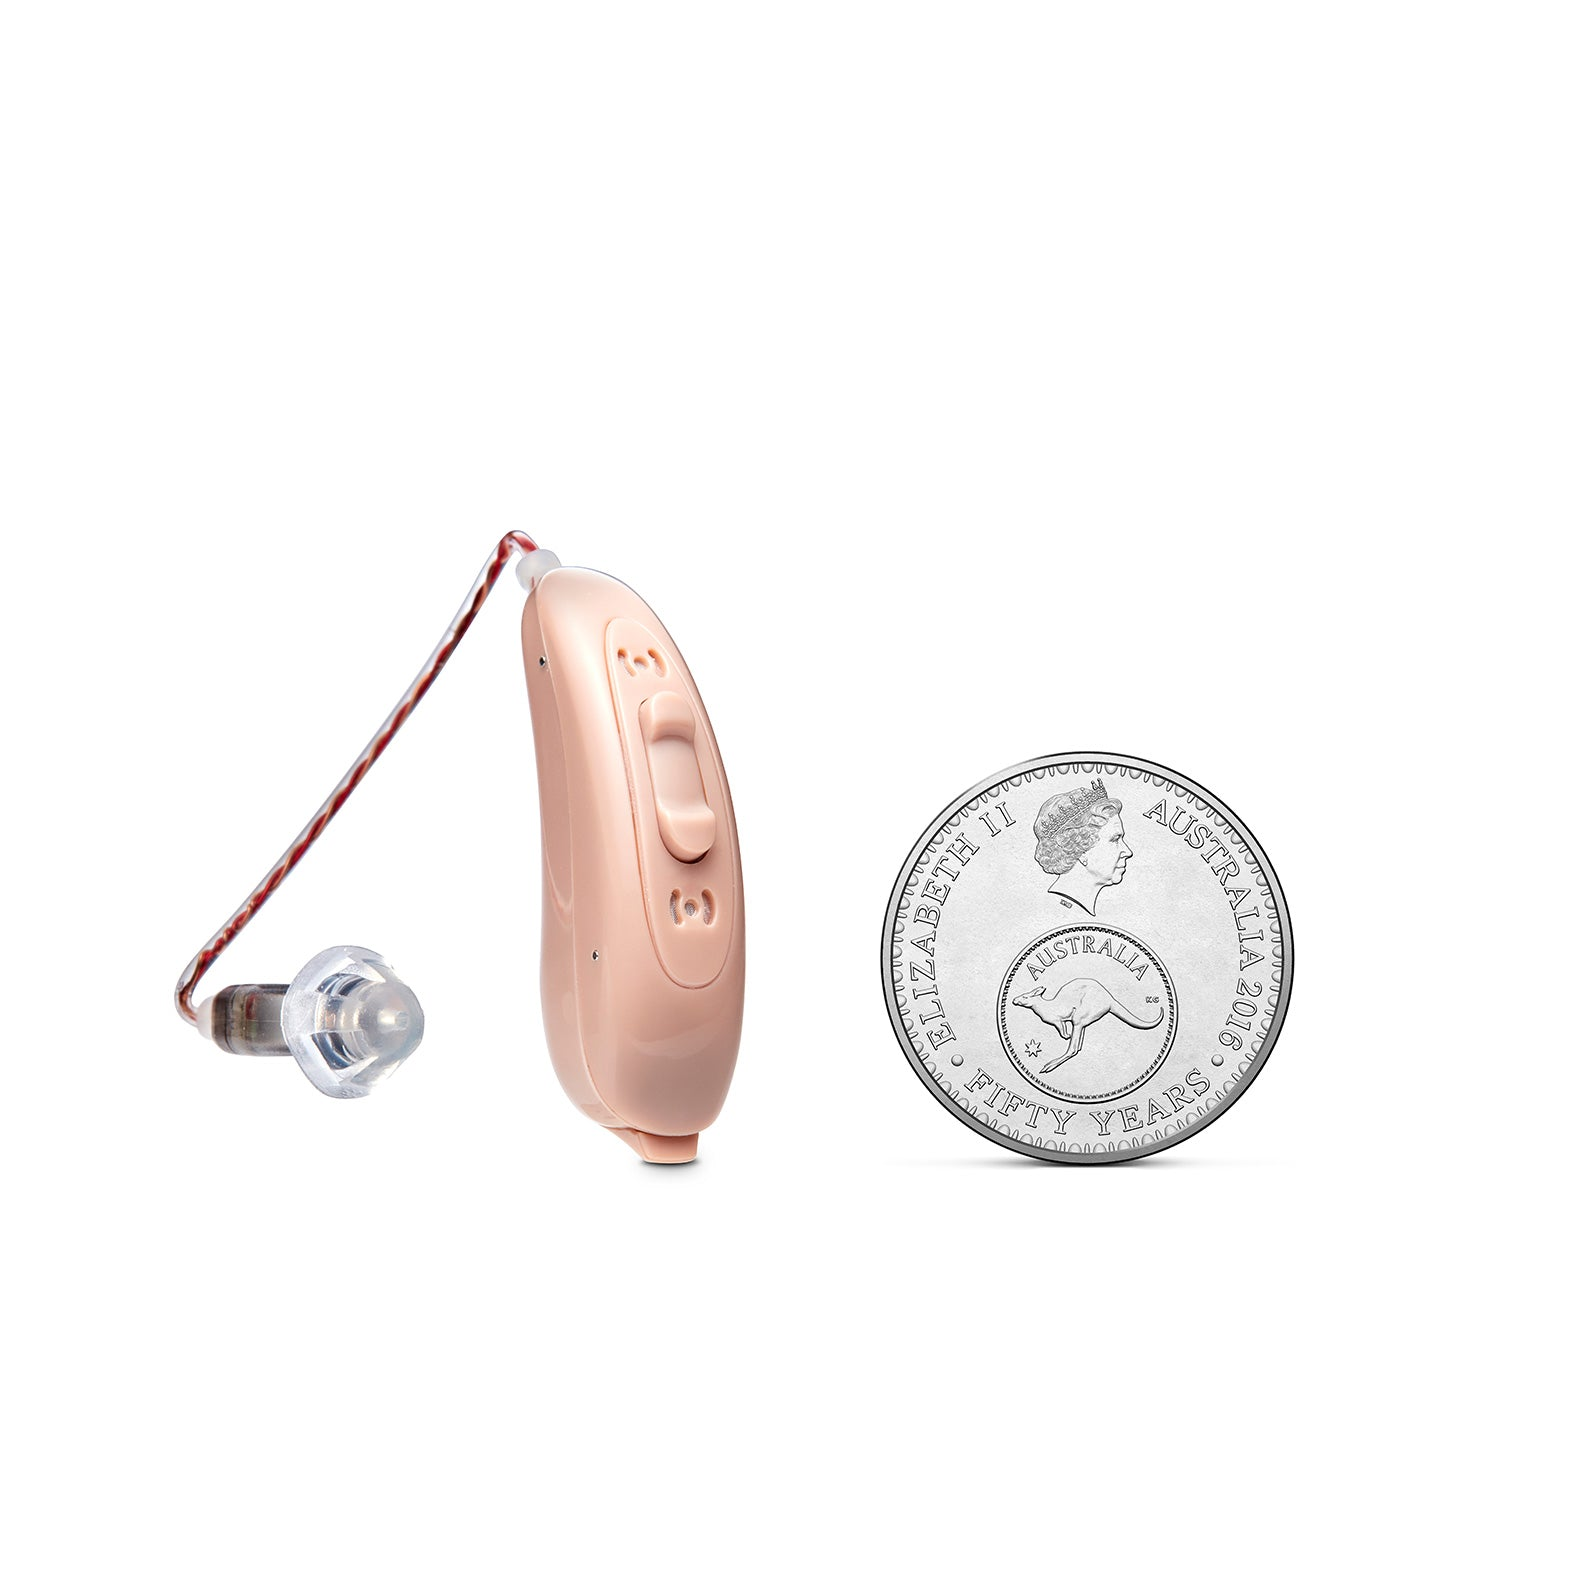 HD 295 RIC Digital Hearing Aid